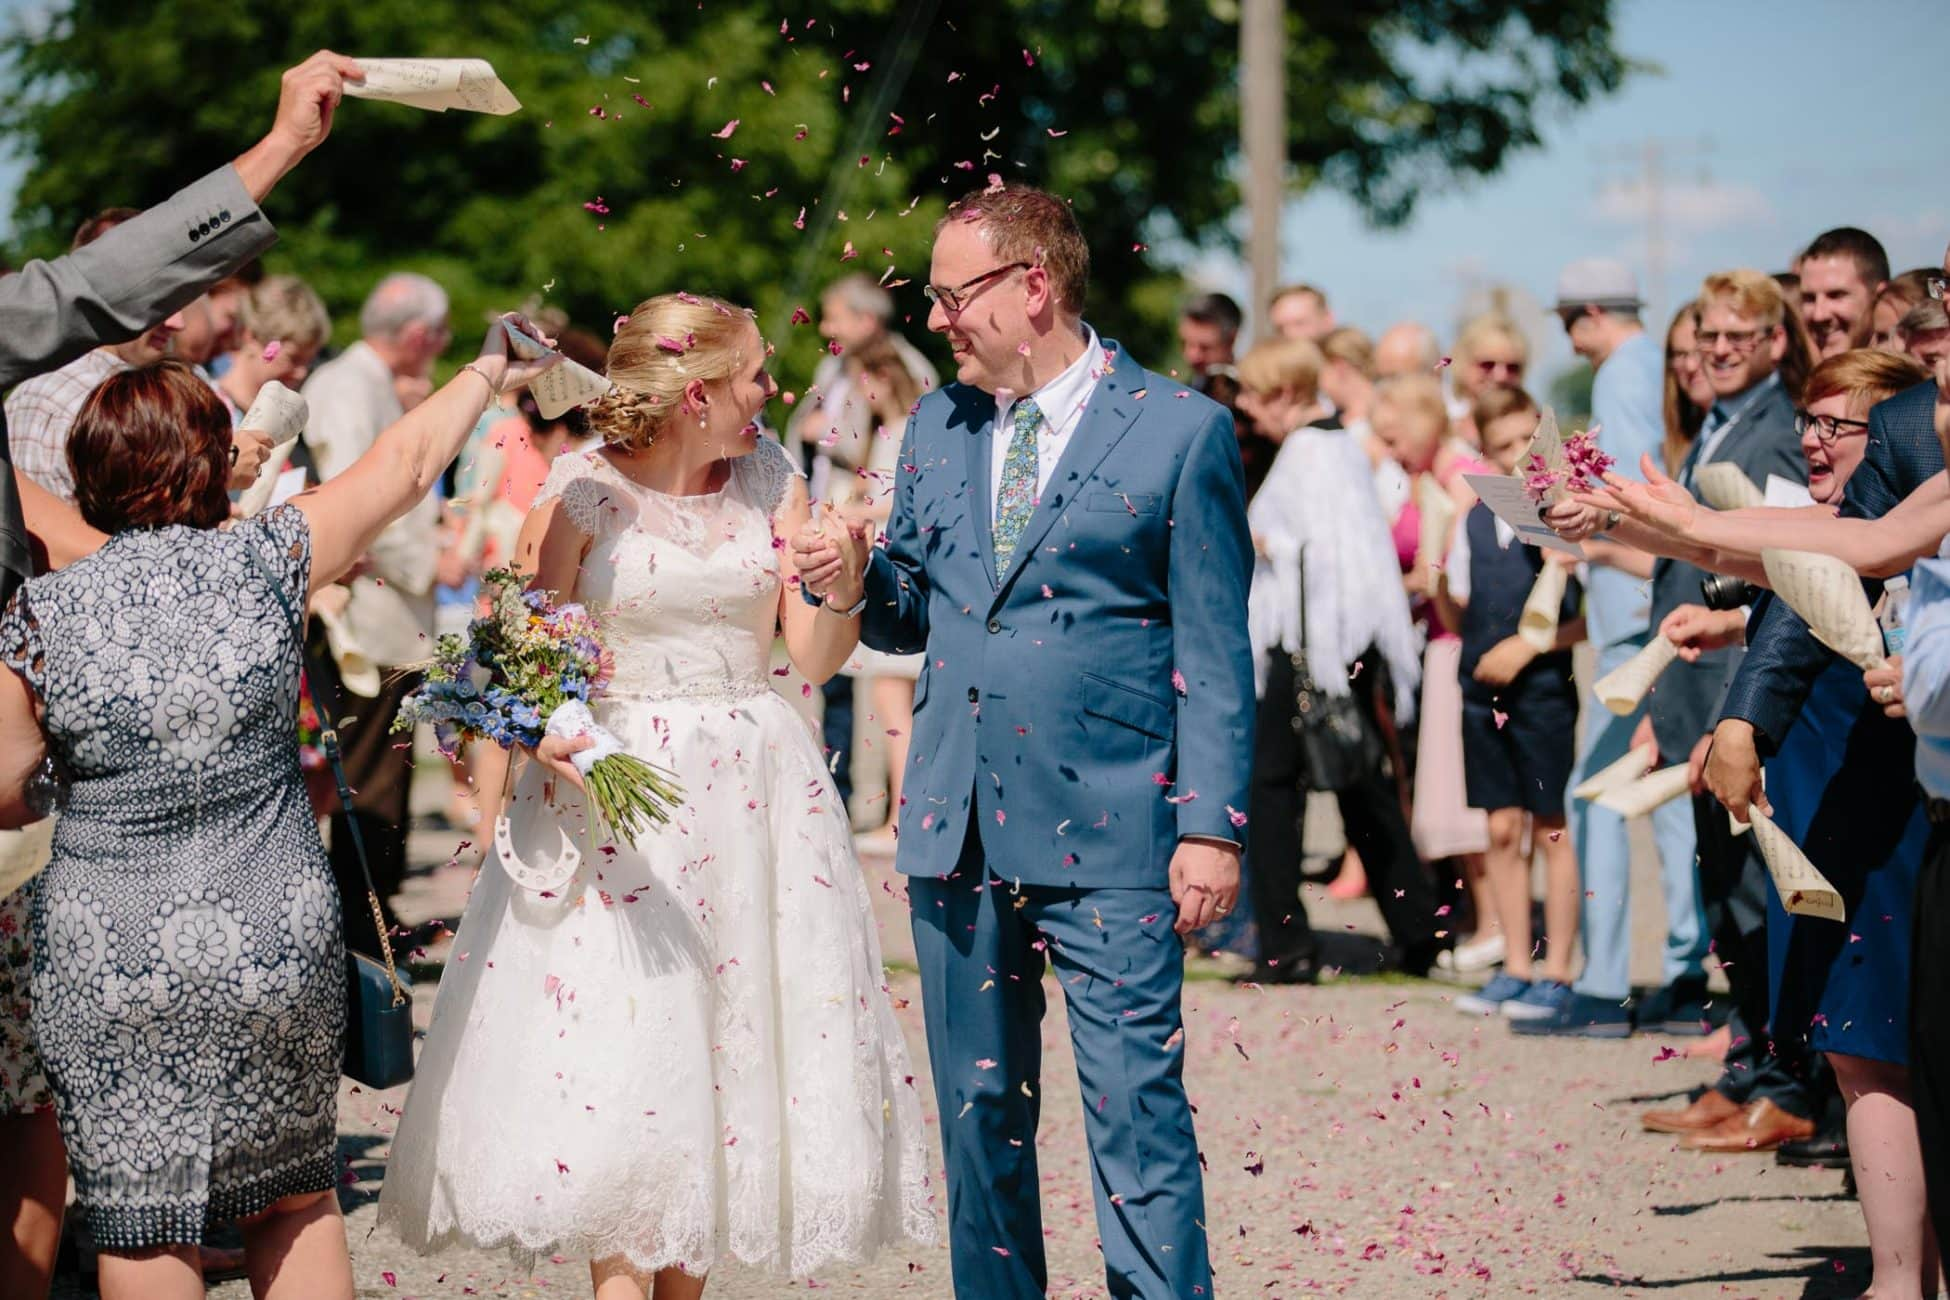 The bride and groom are showered with flower petals by guests outside a countryside church.